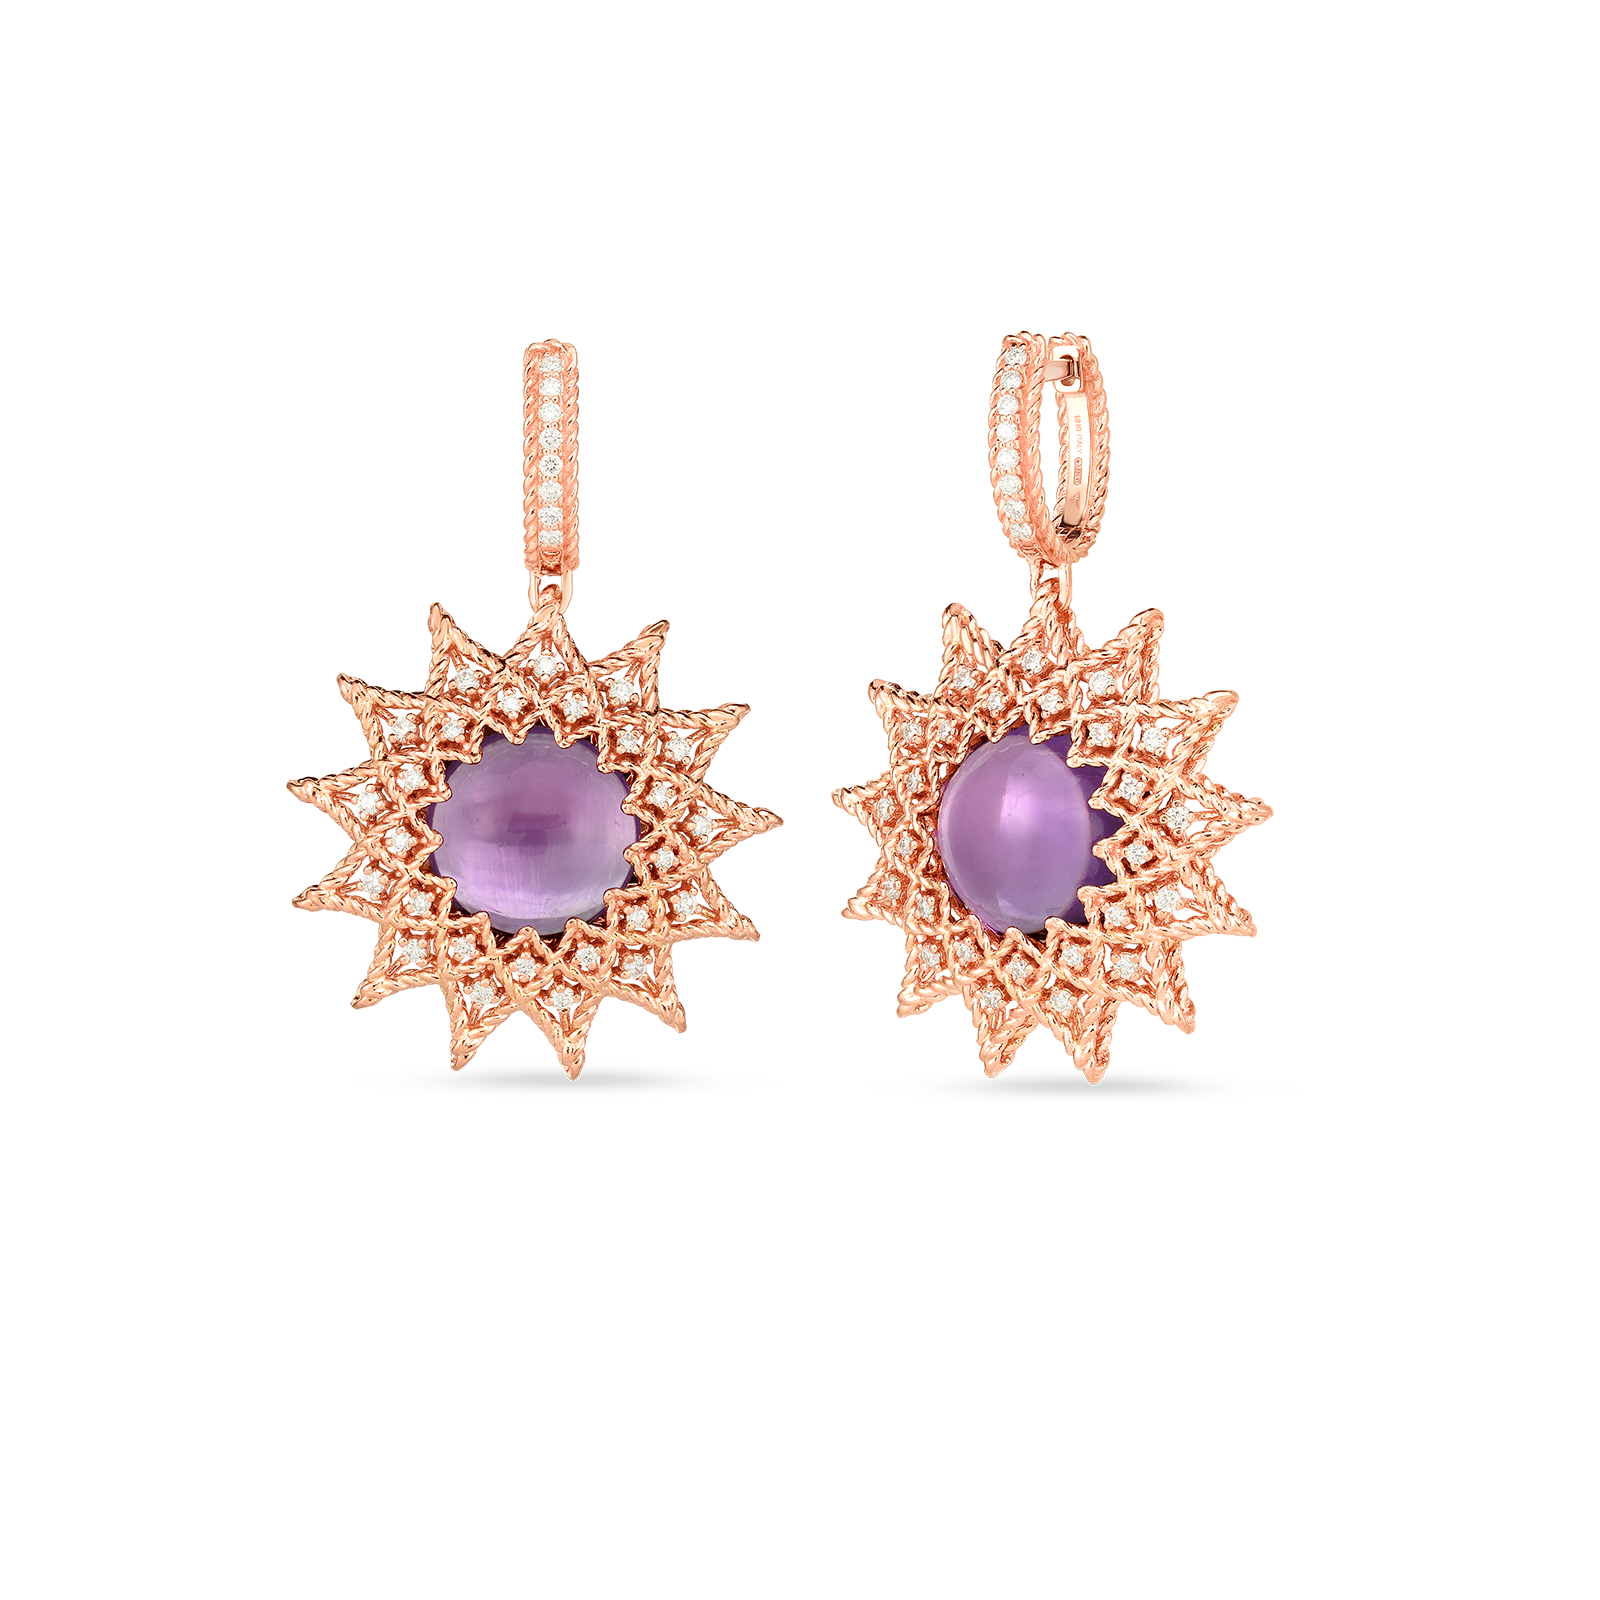 18k Gold, Diamond & Amethyst Roman Barocco Sunburst Drop Earrings